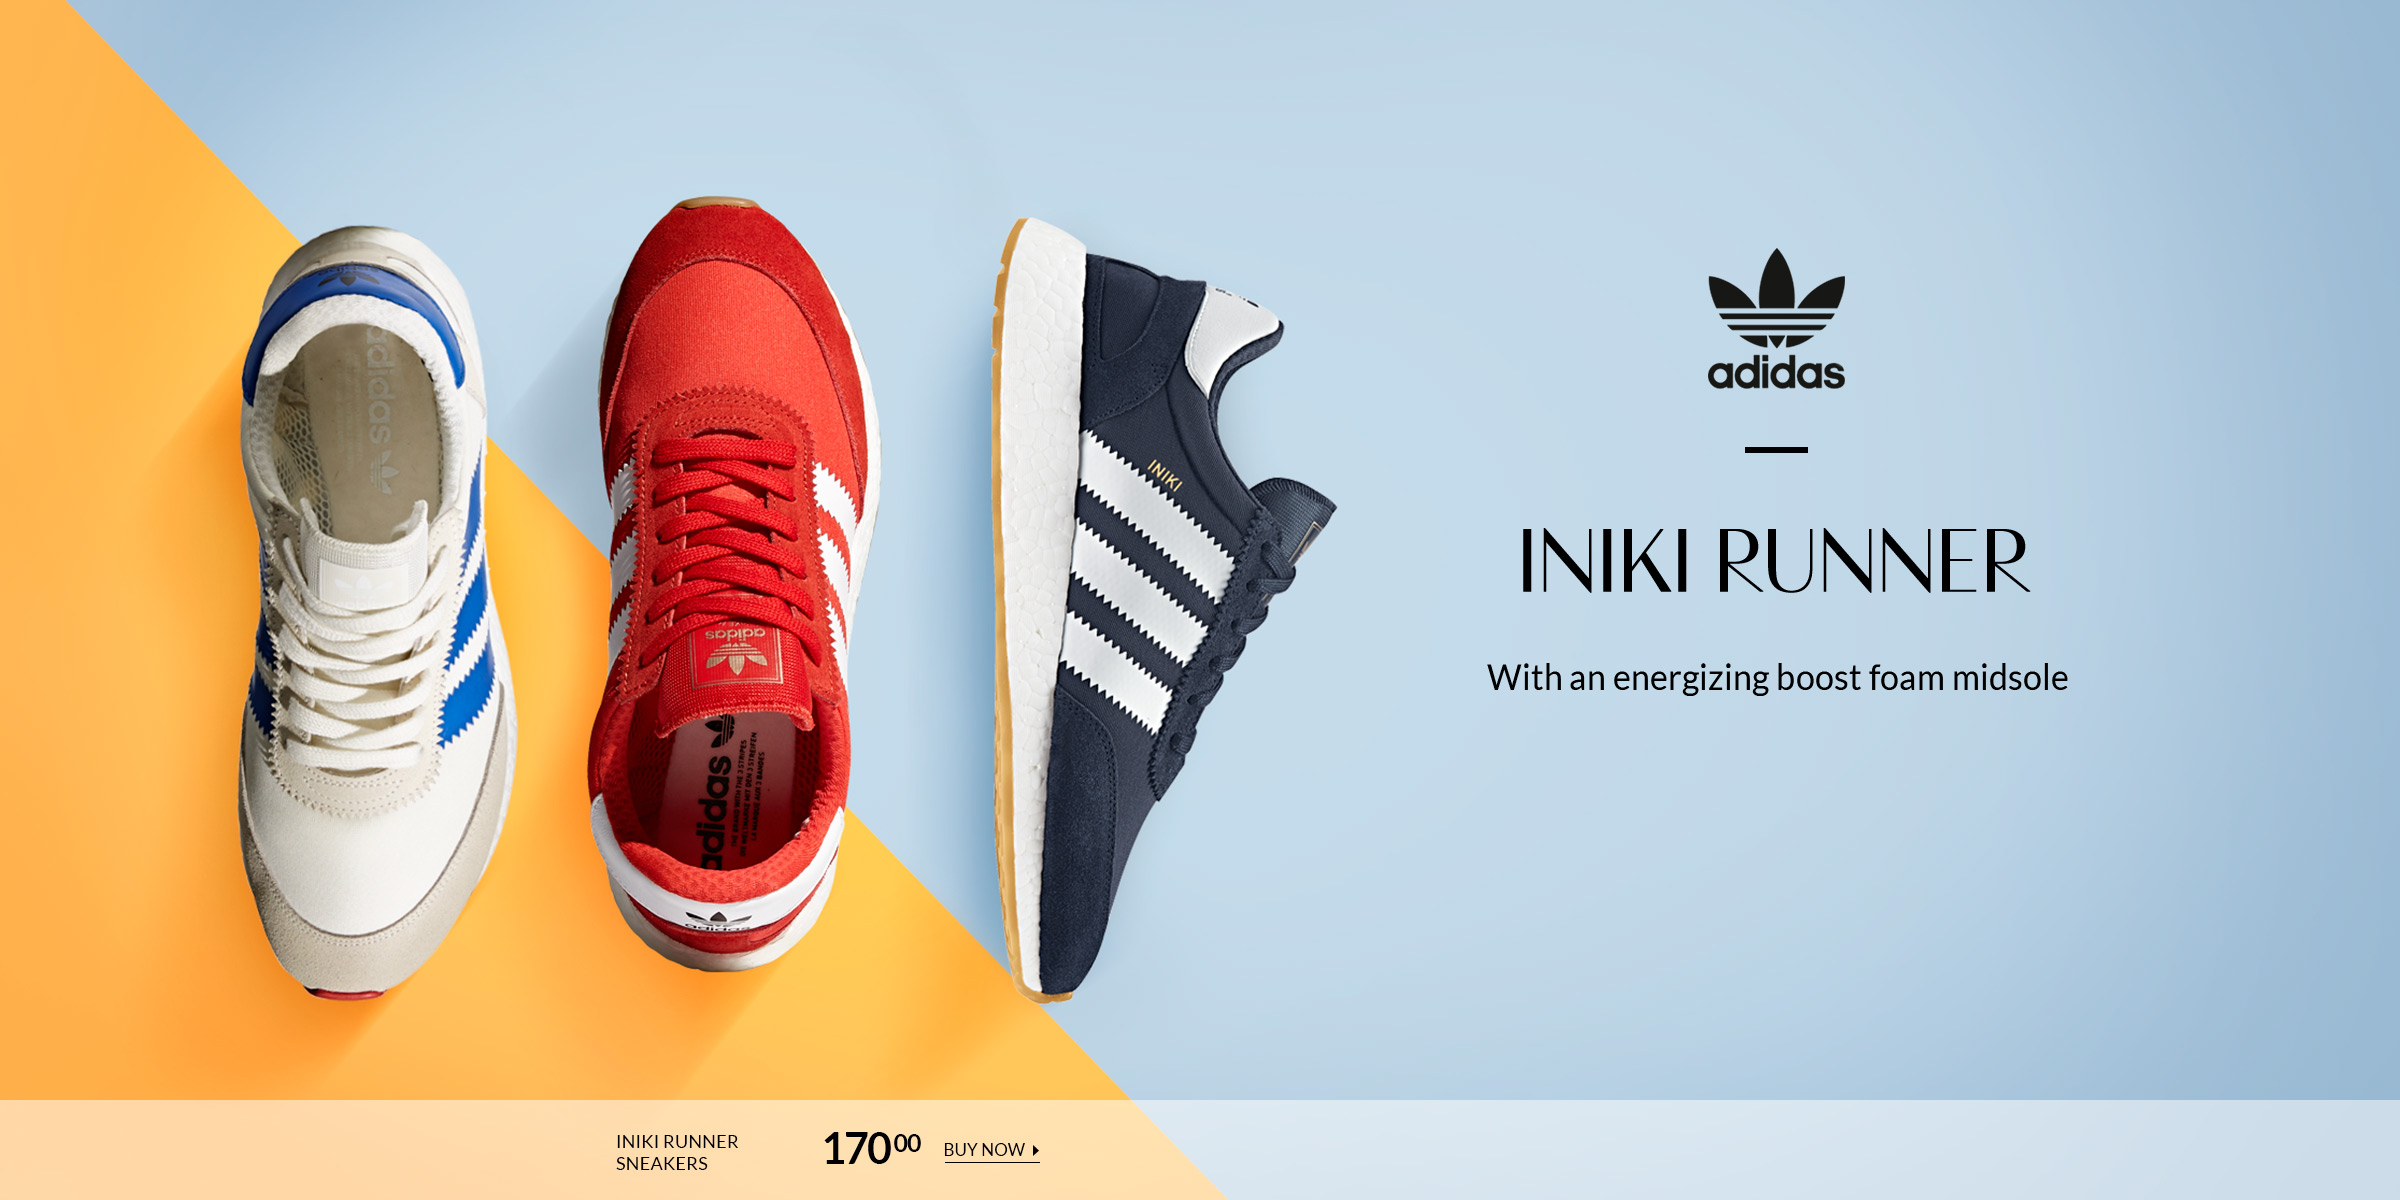 P18-ACCUEIL-HOMME-CHAUSSURES_ADIDASINIKI.psd